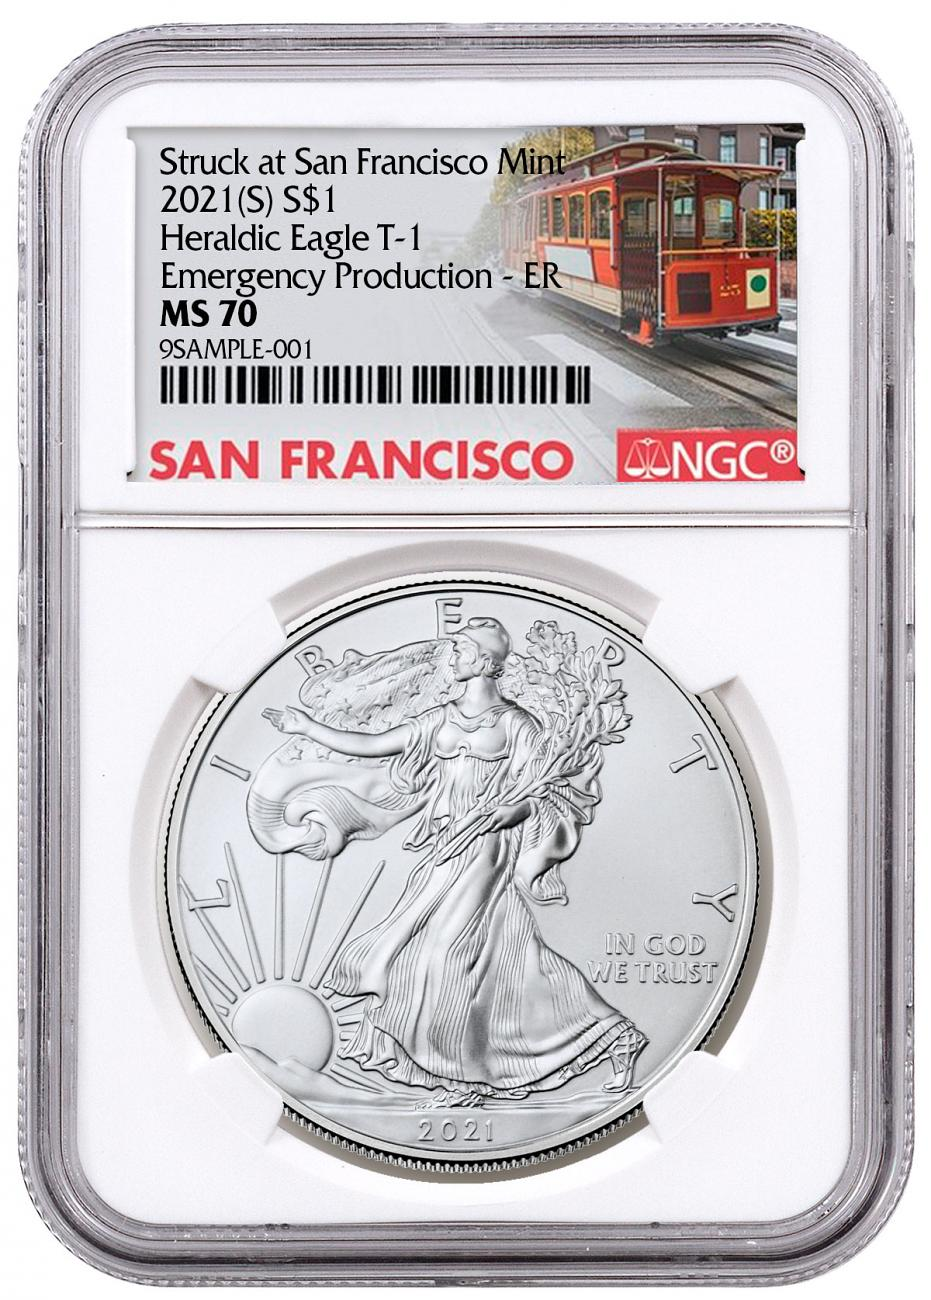 2021-(S) American Silver Eagle Emergency Production Struck at San Francisco Mint T-1 NGC MS70 ER Trolley Label